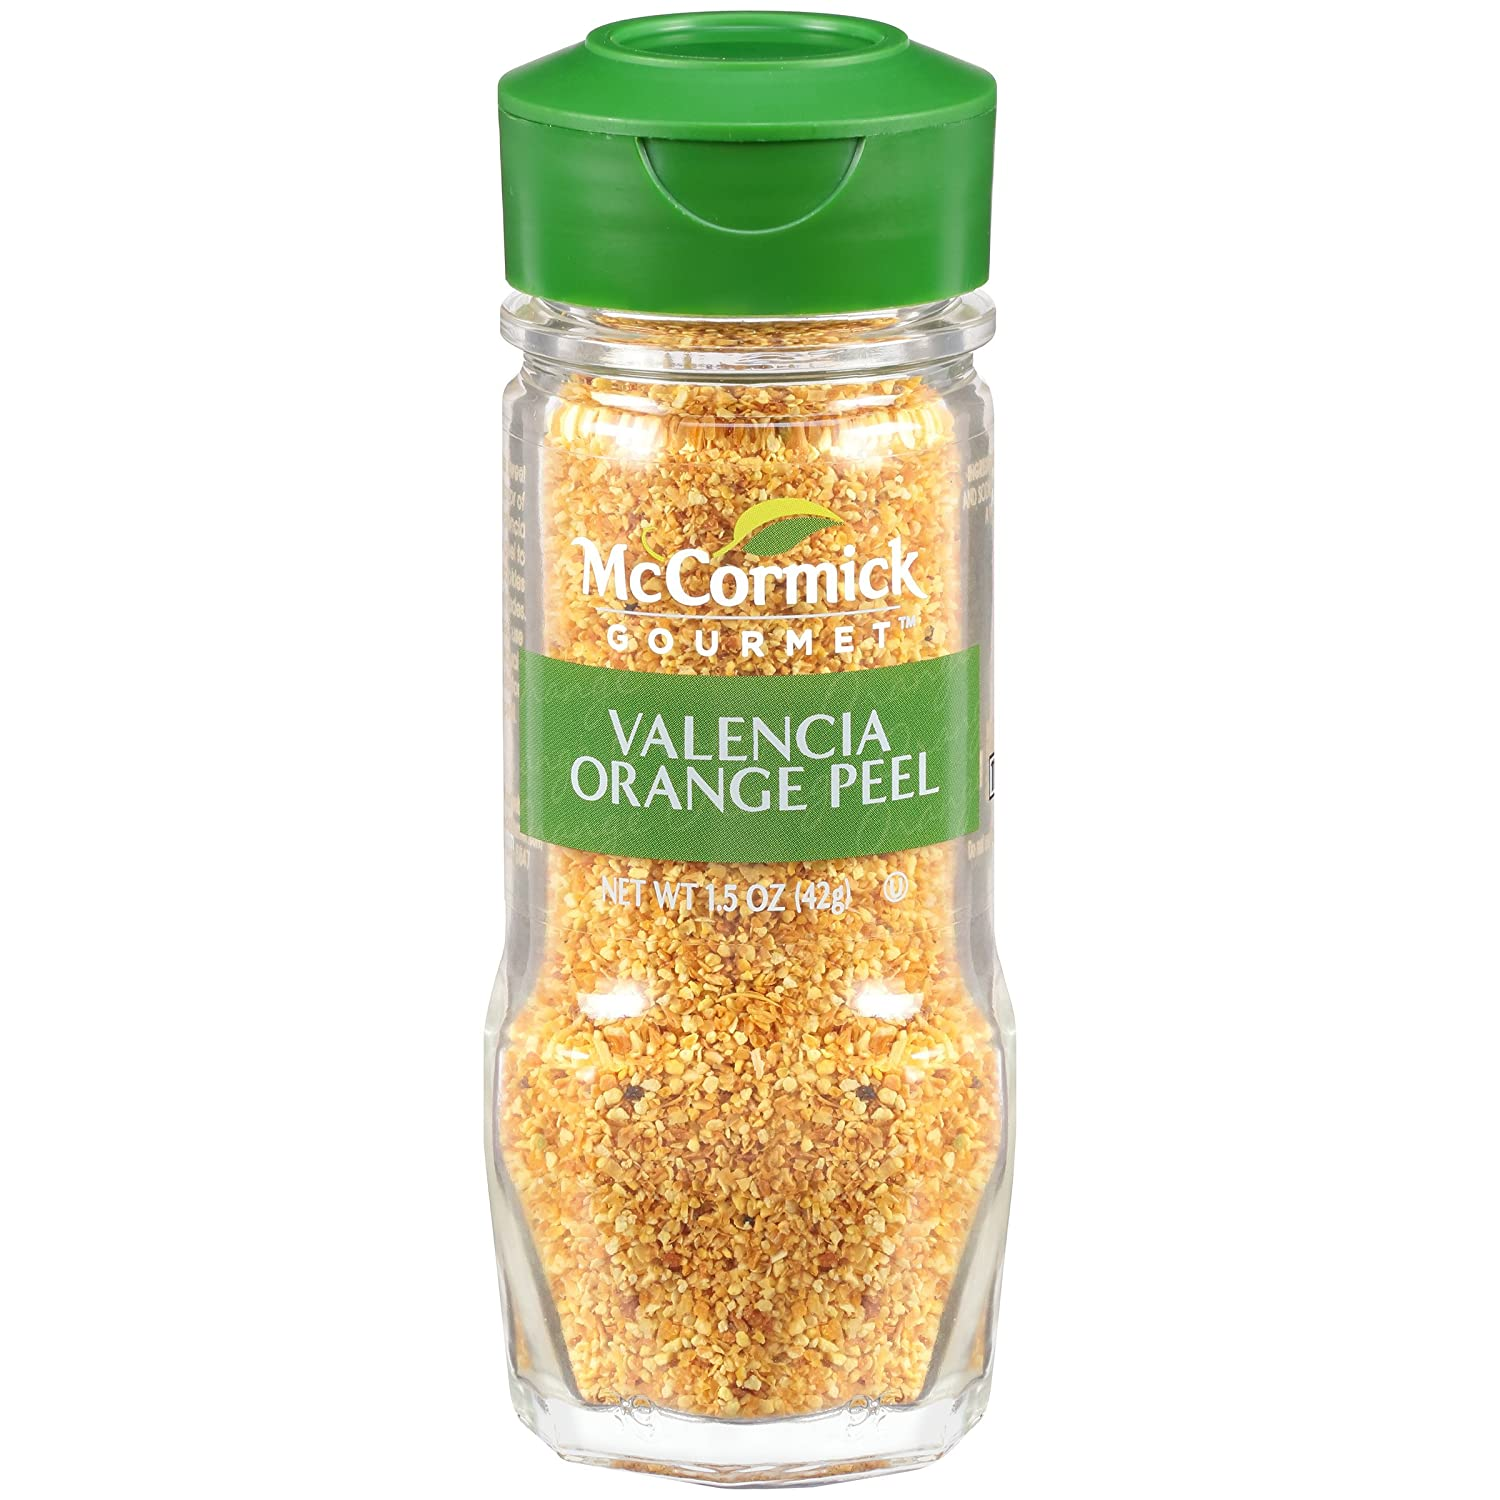 McCormick Gourmet Orange Peel, 1.5 oz